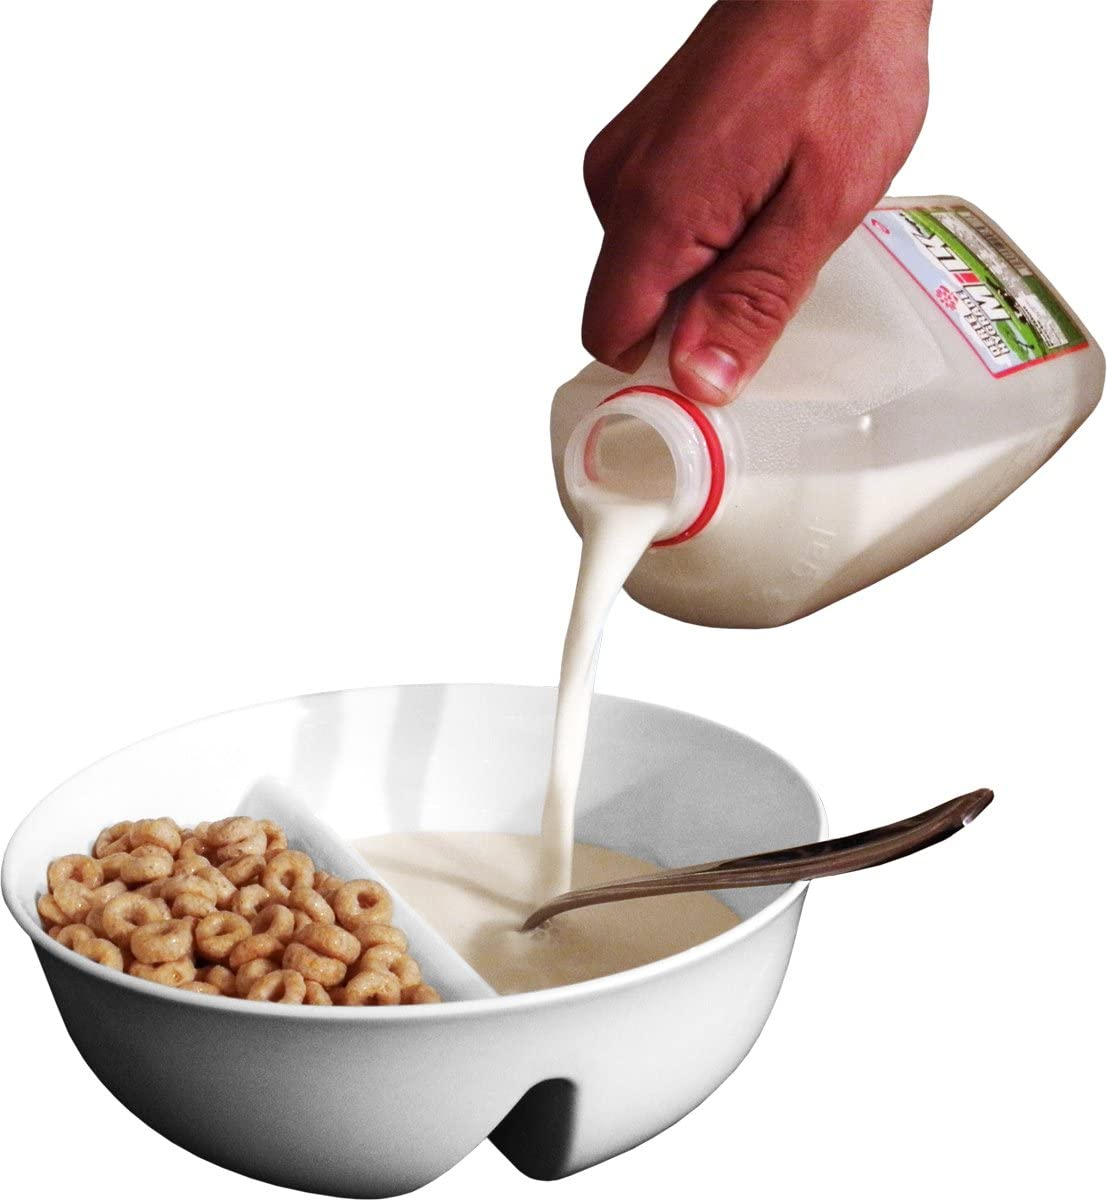 | Just Crunch Anti-Soggy Cereal Bowl - Keeps Cereal Fresh & Crunchy | BPA Free | Microwave Safe | Ice Cream & Topping, Yogurt & Berries, Fries & Ketchup and More – White: Soup Cereal Bowls: Cereal Bowls